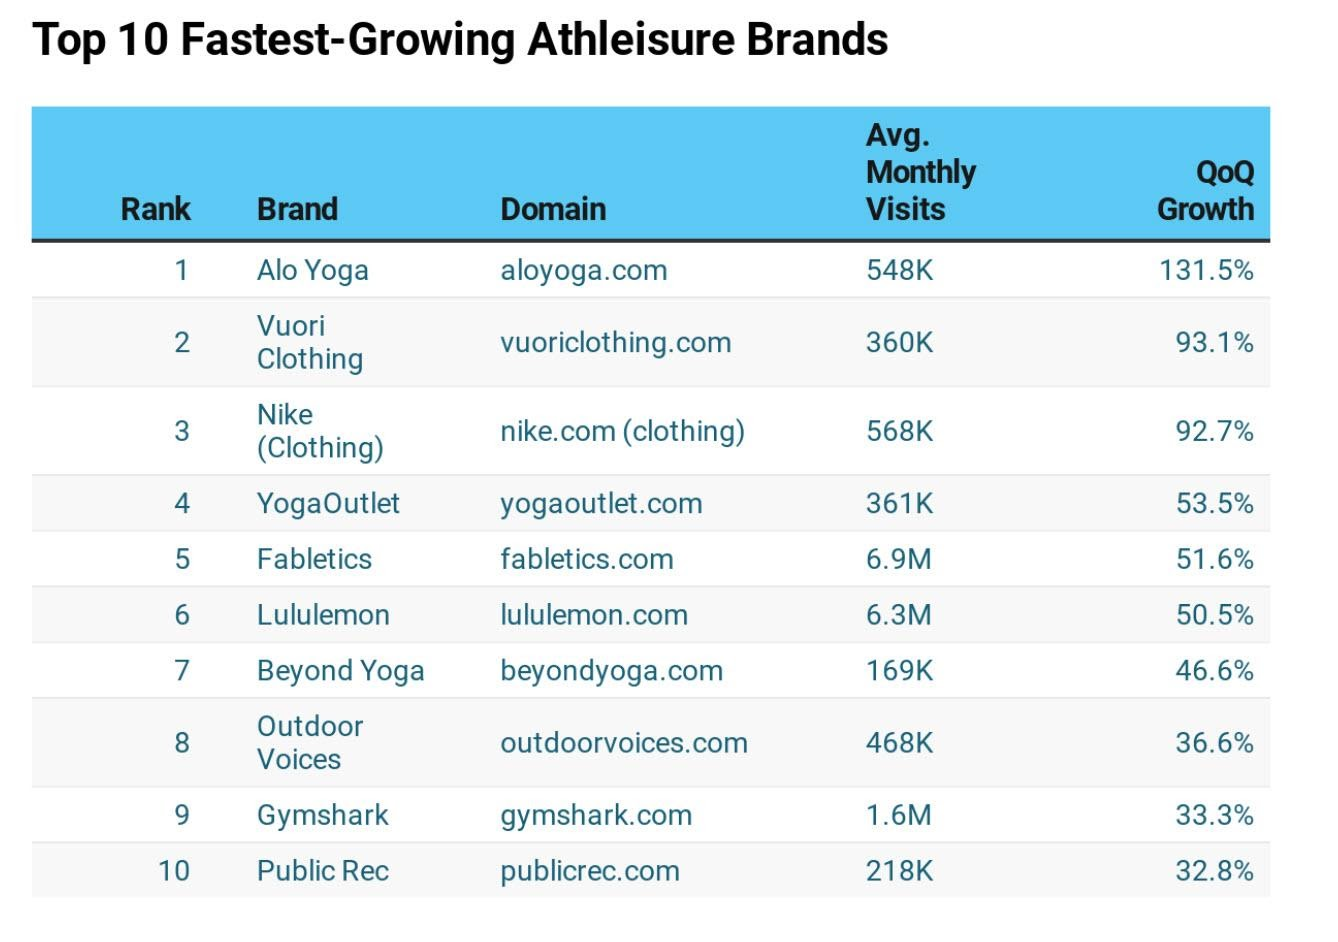 Top 10 Fastest-Growing Athleisure Brands